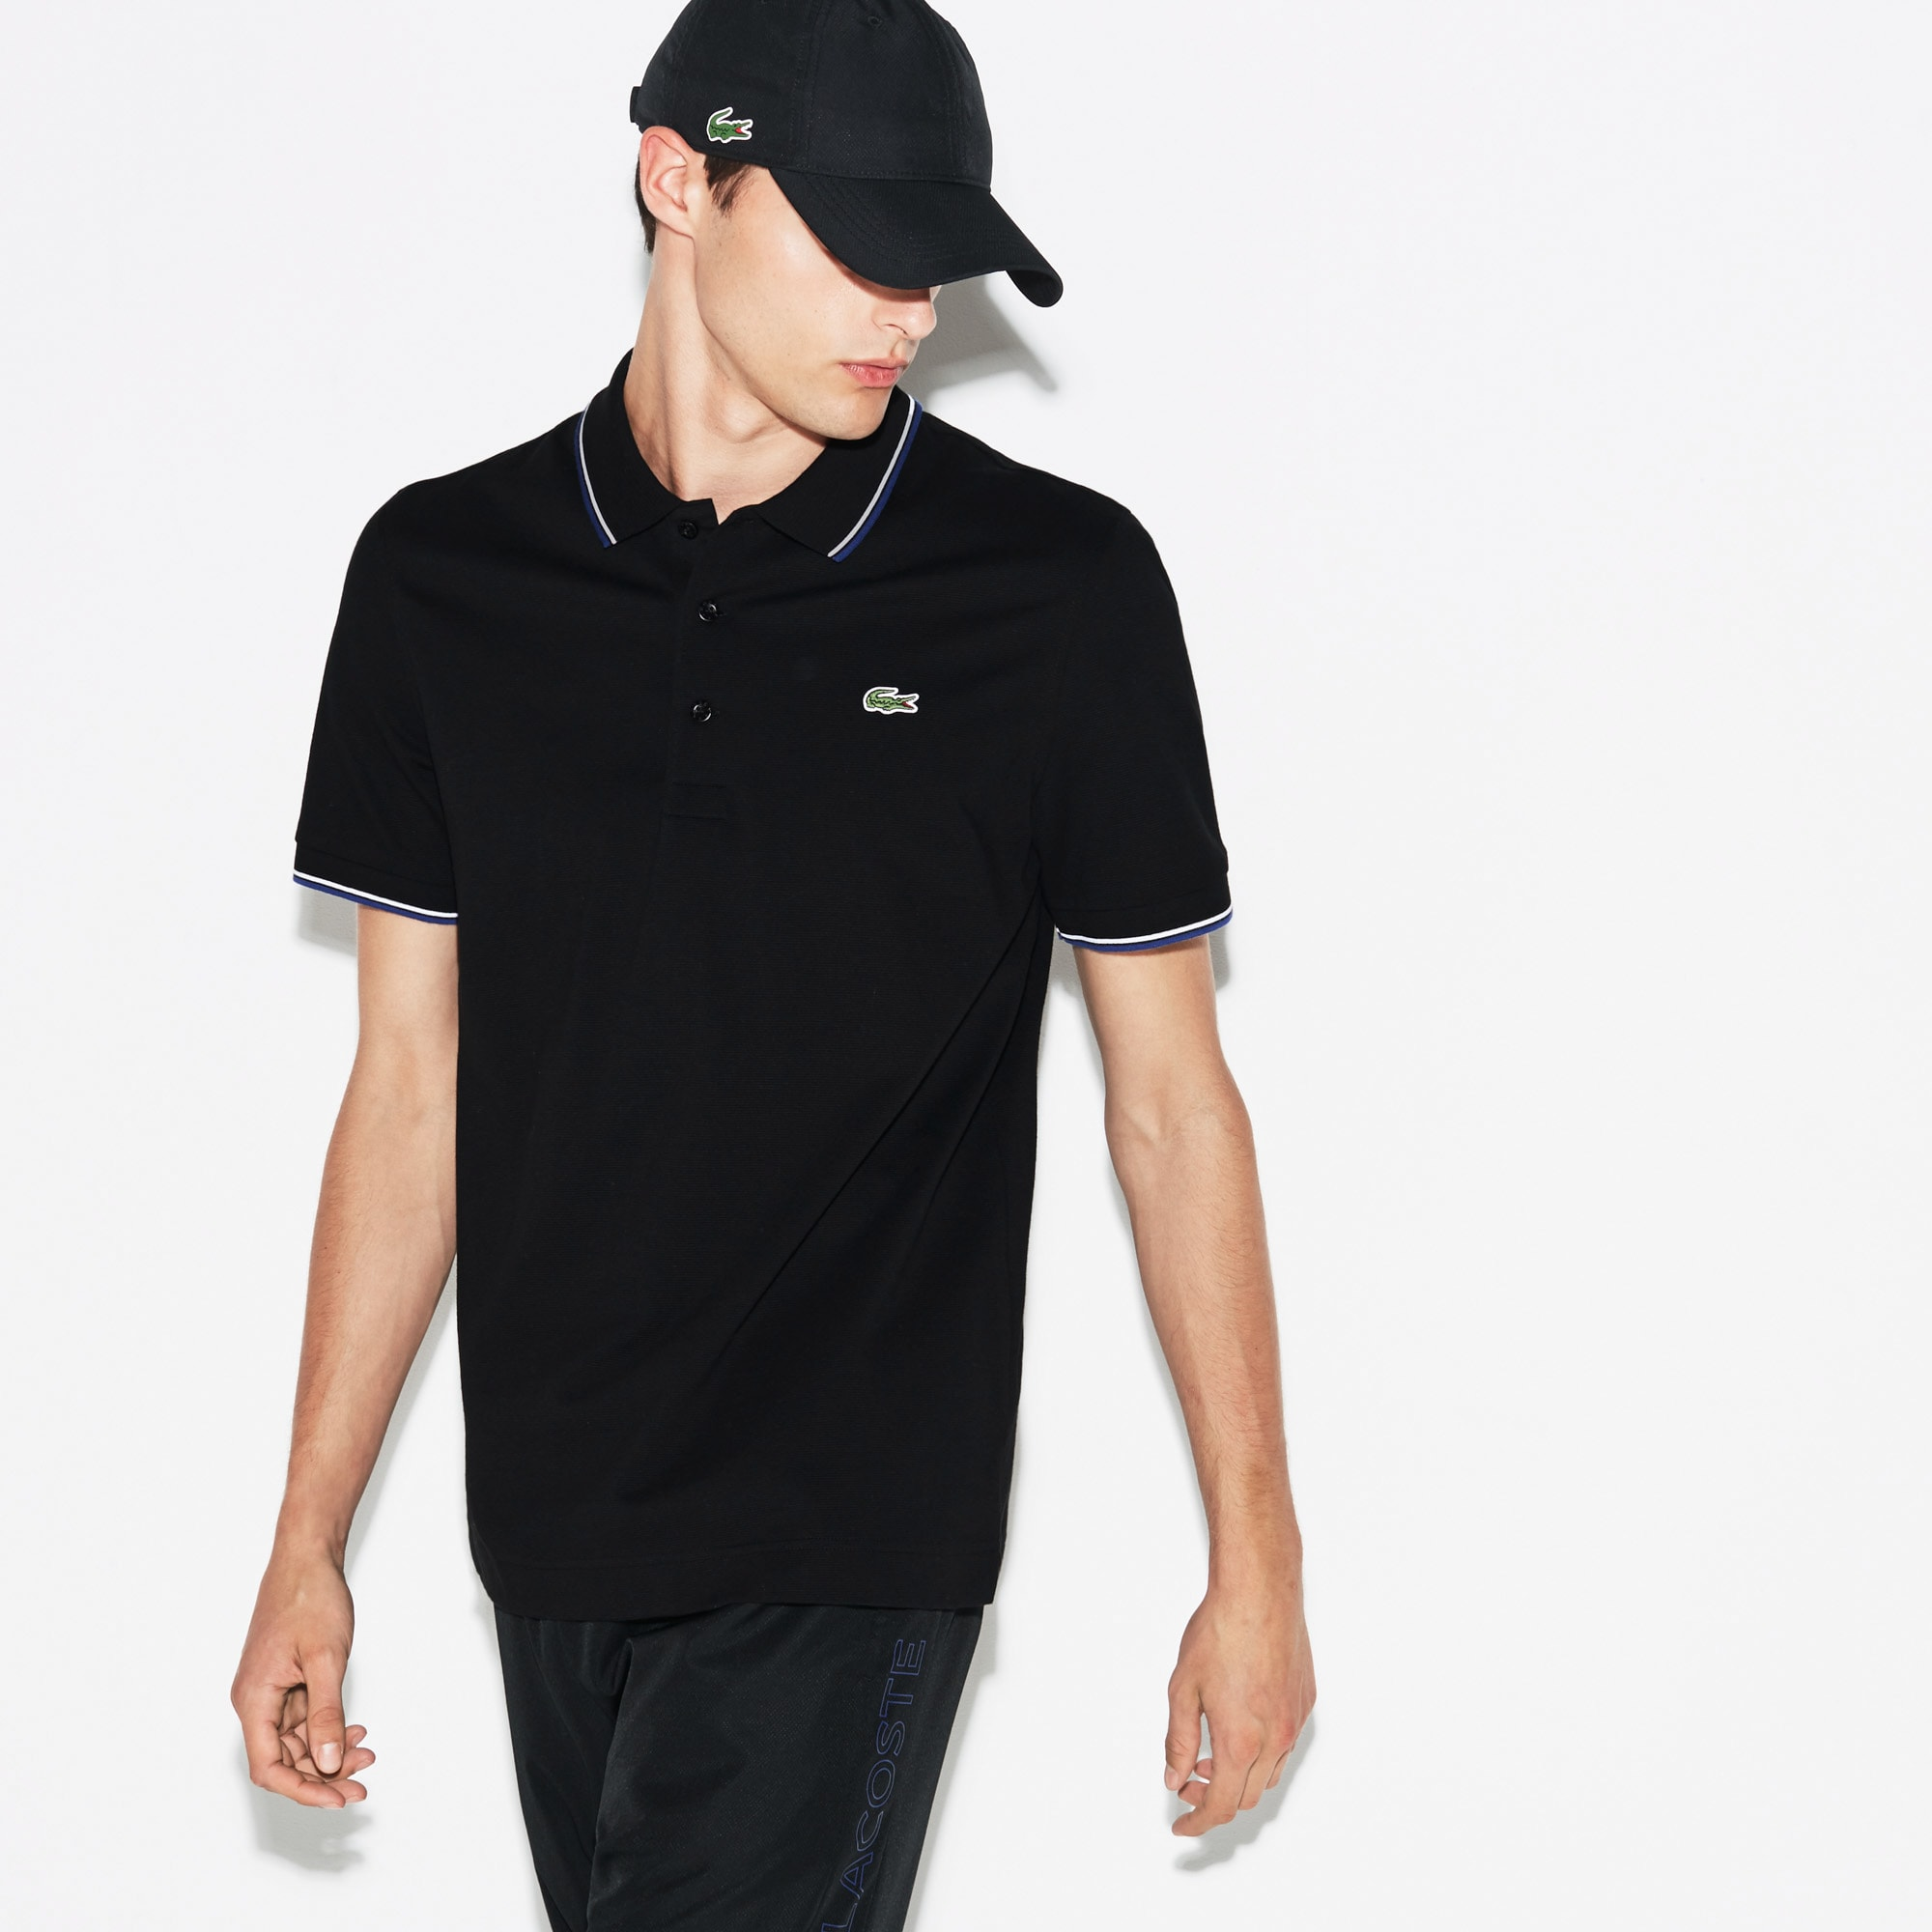 8682765b484d3 Regular fit Polo shirts   Men s Fashion   LACOSTE